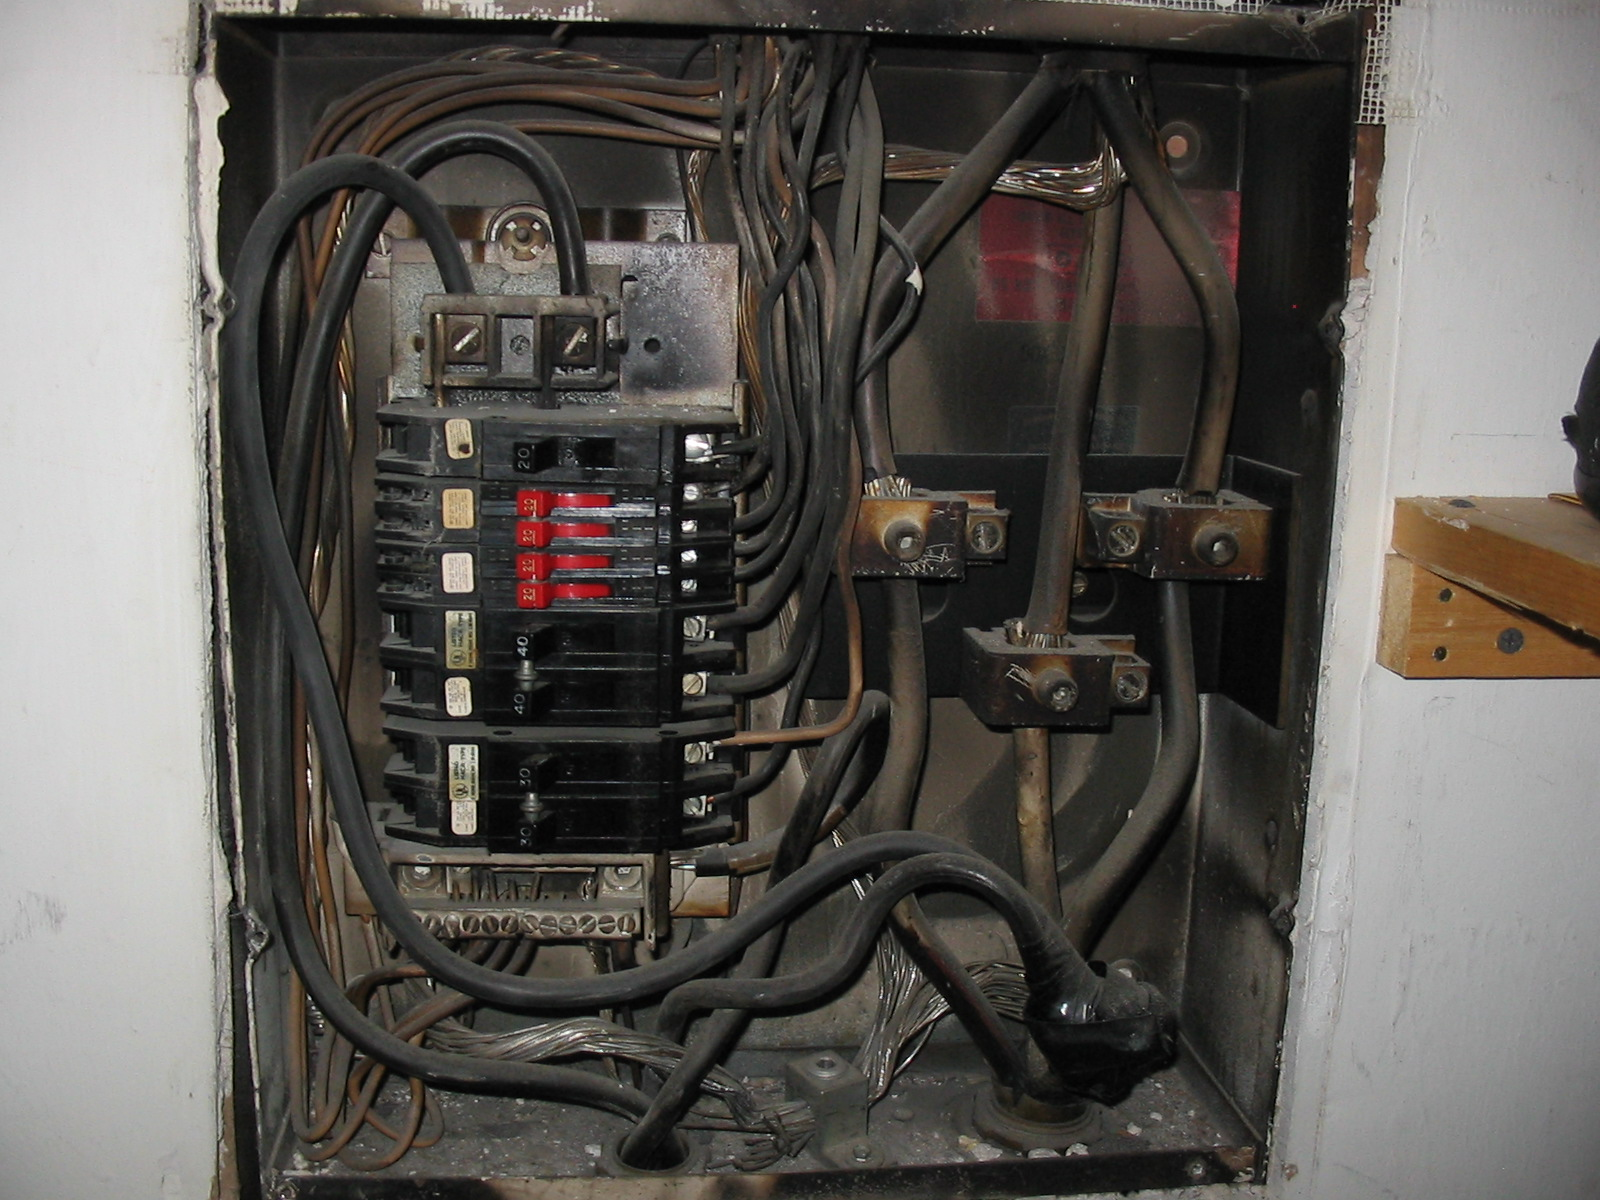 aluminum wiring abode inspection services rh abodeinspectionservices com Aluminum Wiring Issues Aluminum Wiring Issues